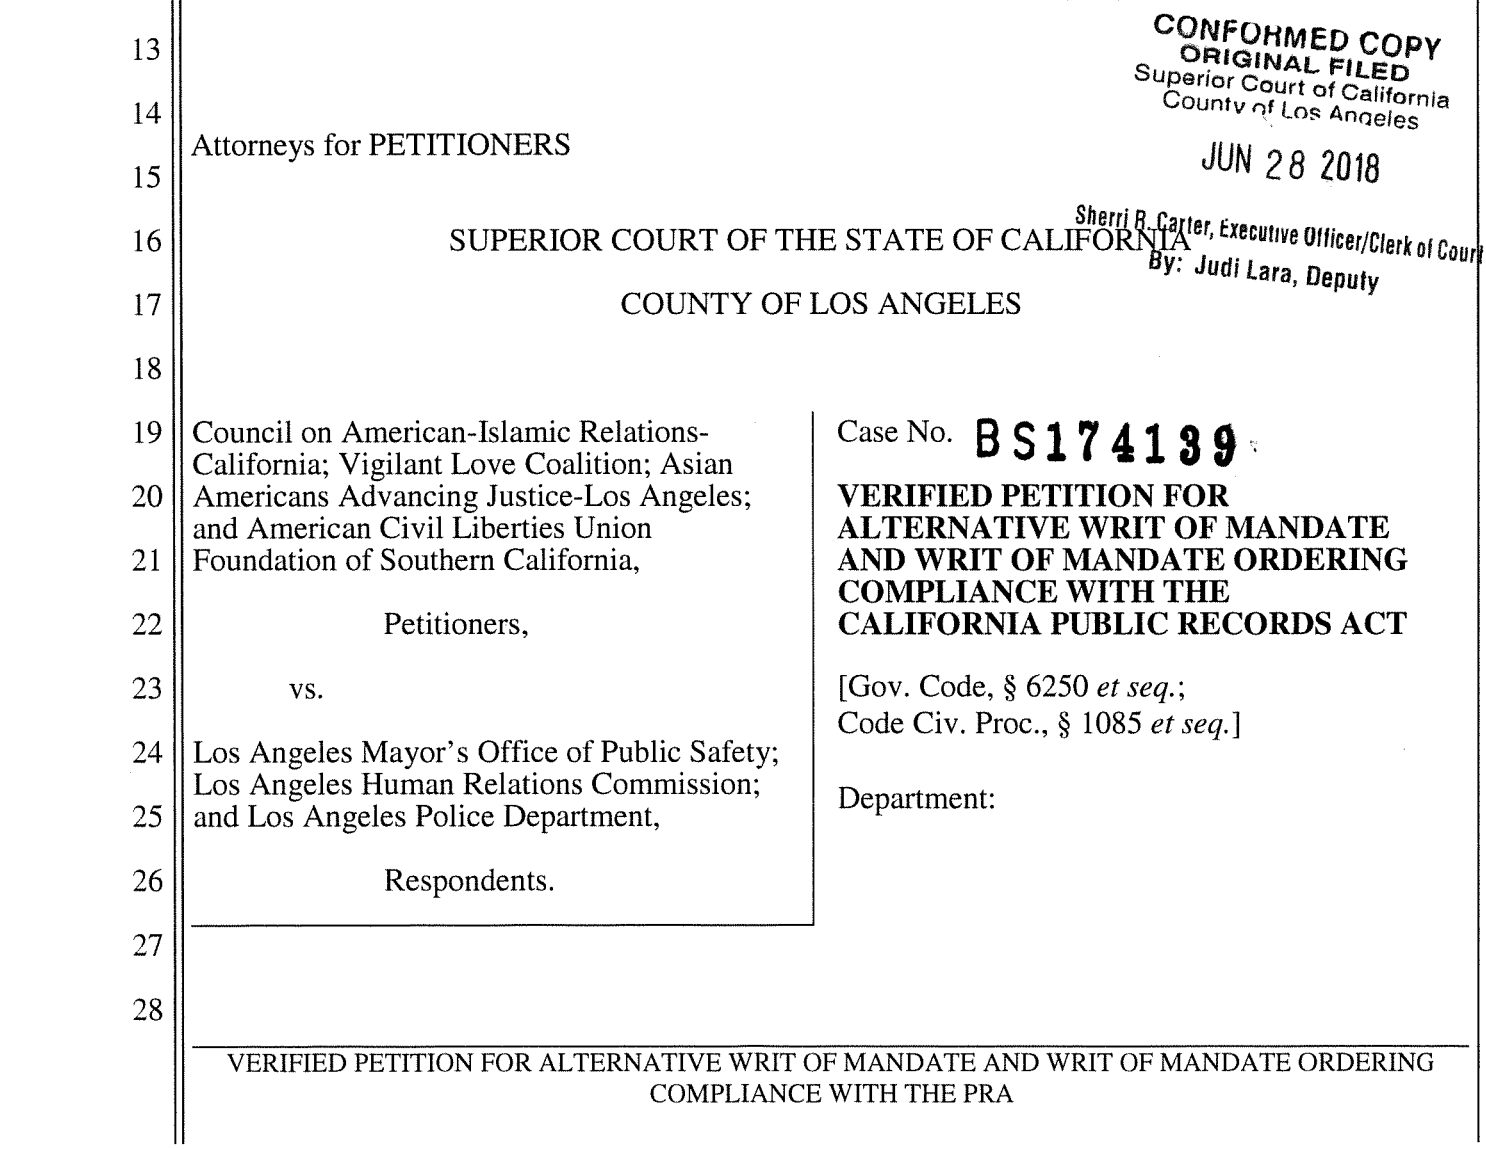 A Lawsuit - A coalition of organizations in Los Angeles filed a lawsuit against the City of Los Angeles for failing to respond to a Public Records Act Request regarding CVE.